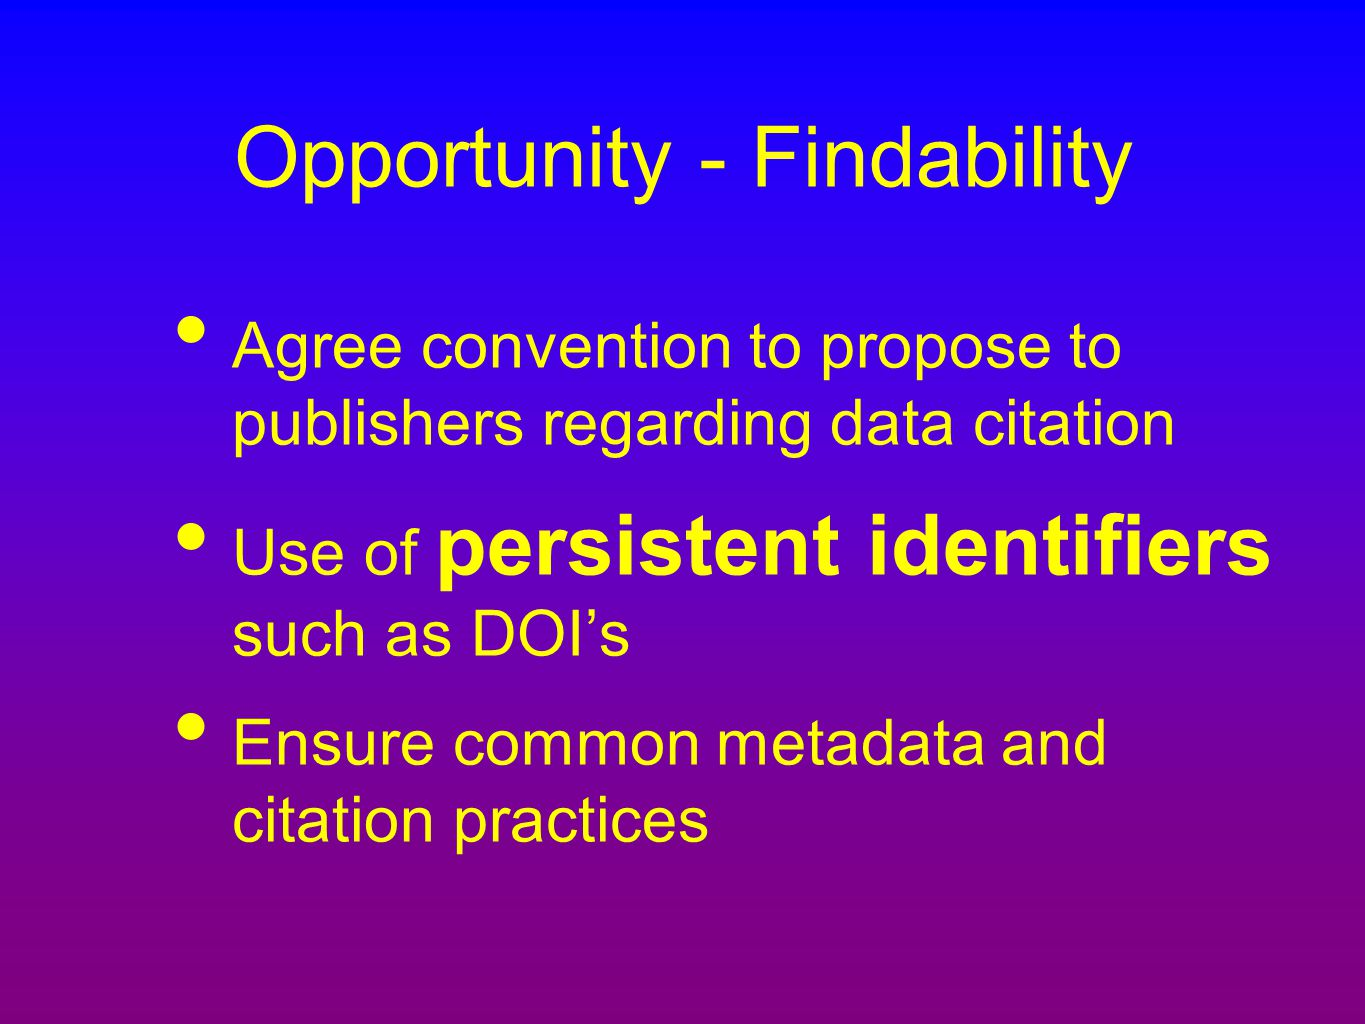 Opportunity - Findability Agree convention to propose to publishers regarding data citation Use of persistent identifiers such as DOI's Ensure common